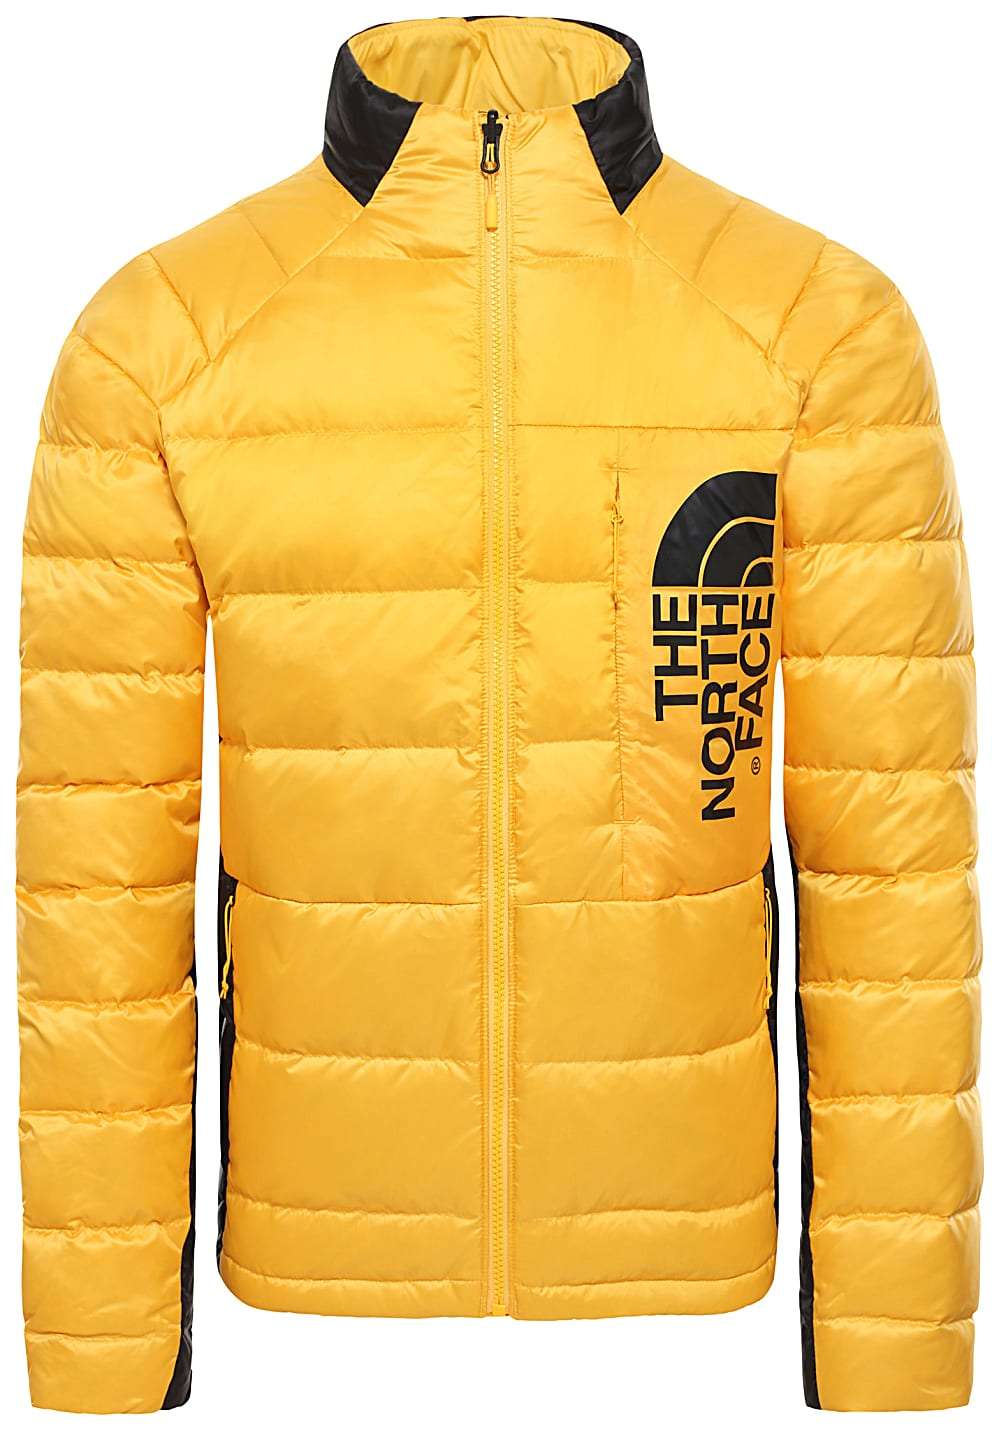 THE NORTH FACE Peakfrontier II Giacca outdoor per Uomo